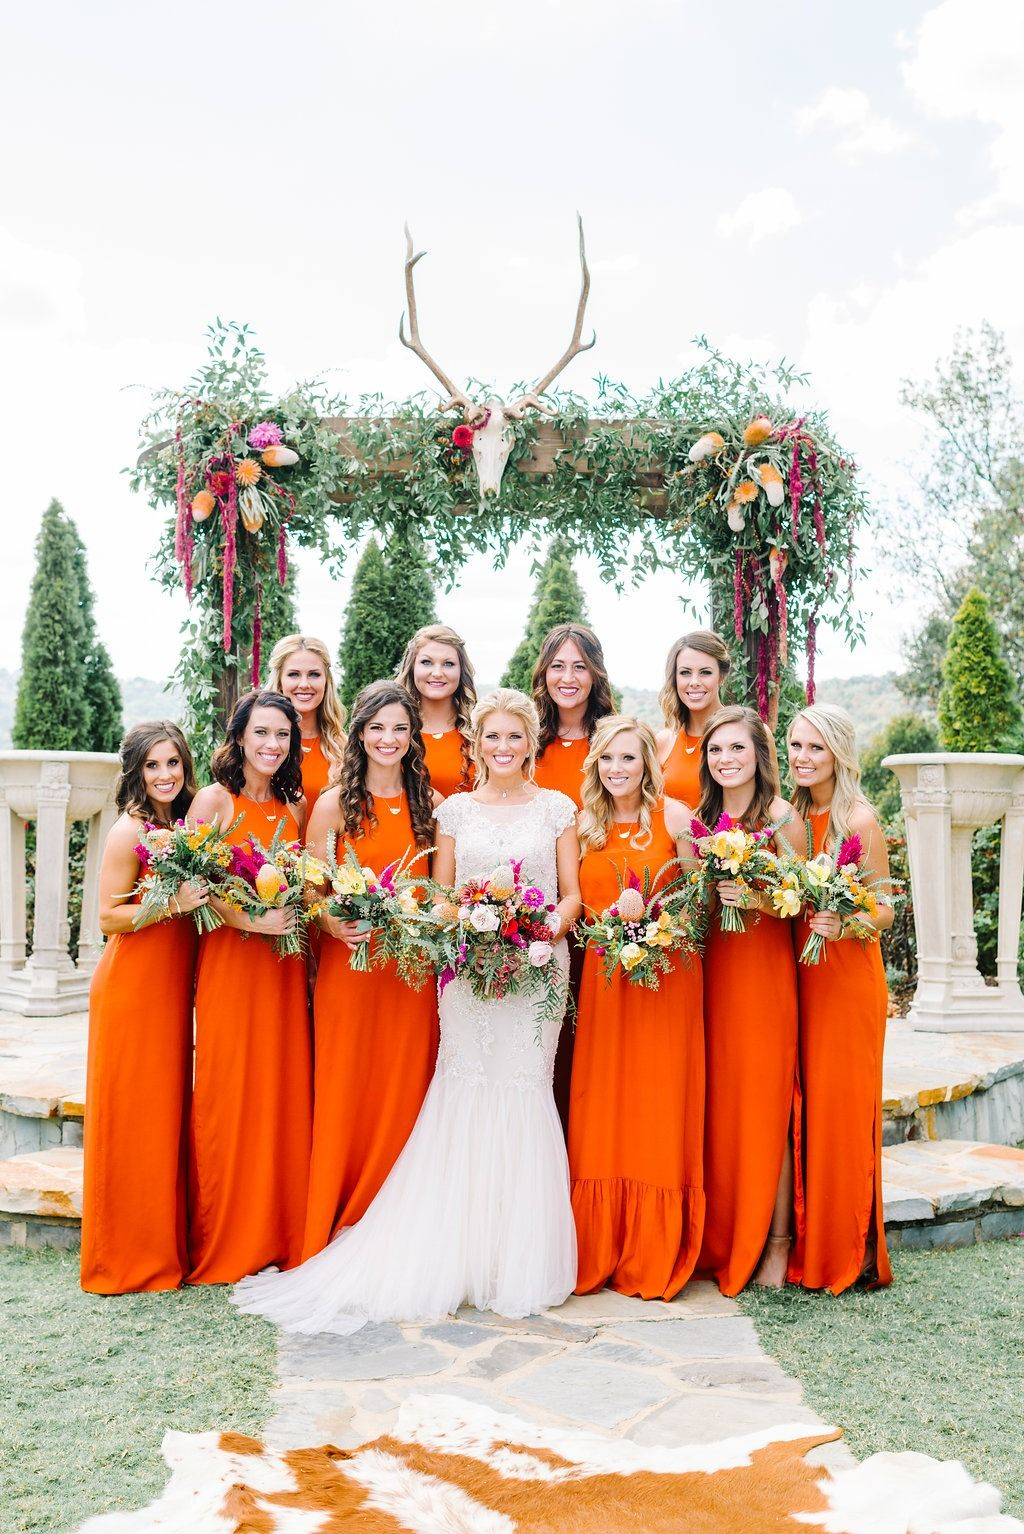 This Bride Chose To Have Her Bridesmaids Wear Bright And Bold Orange Bridesmaid Dresses For Winter Wedding What A Unique Cheery Look The Cool